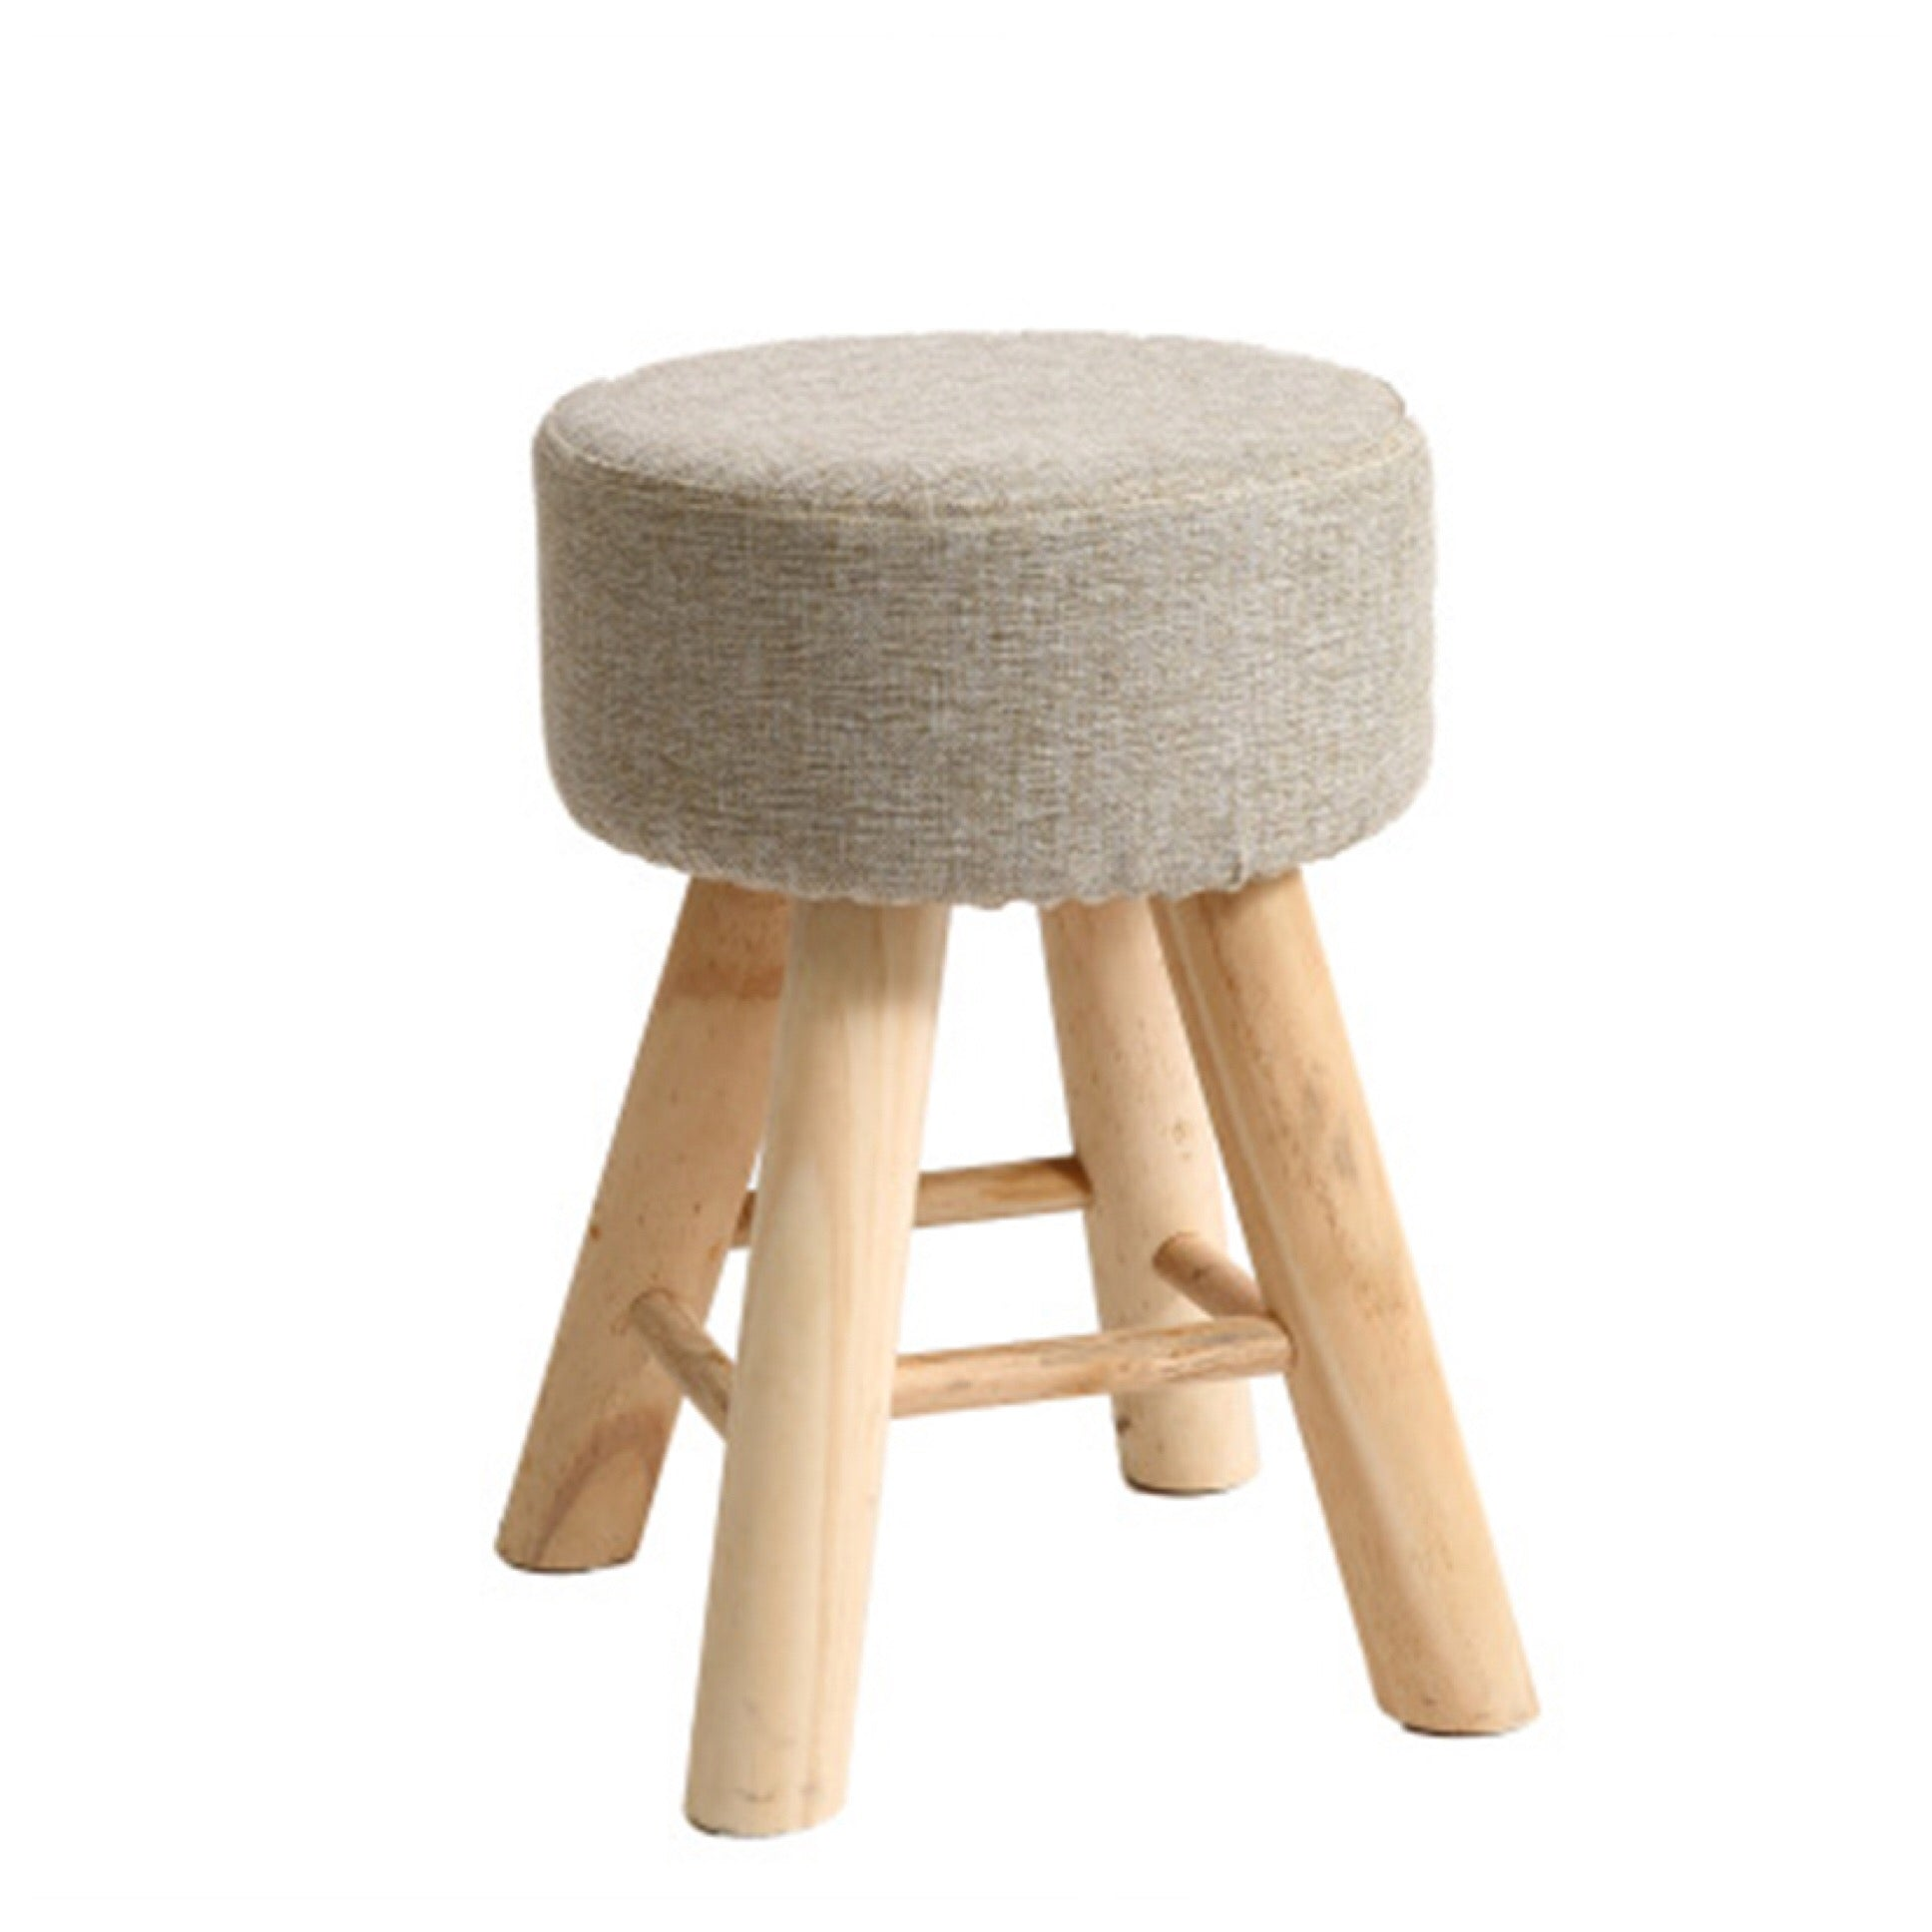 Accent Decor Stool - Pine Lane Designs